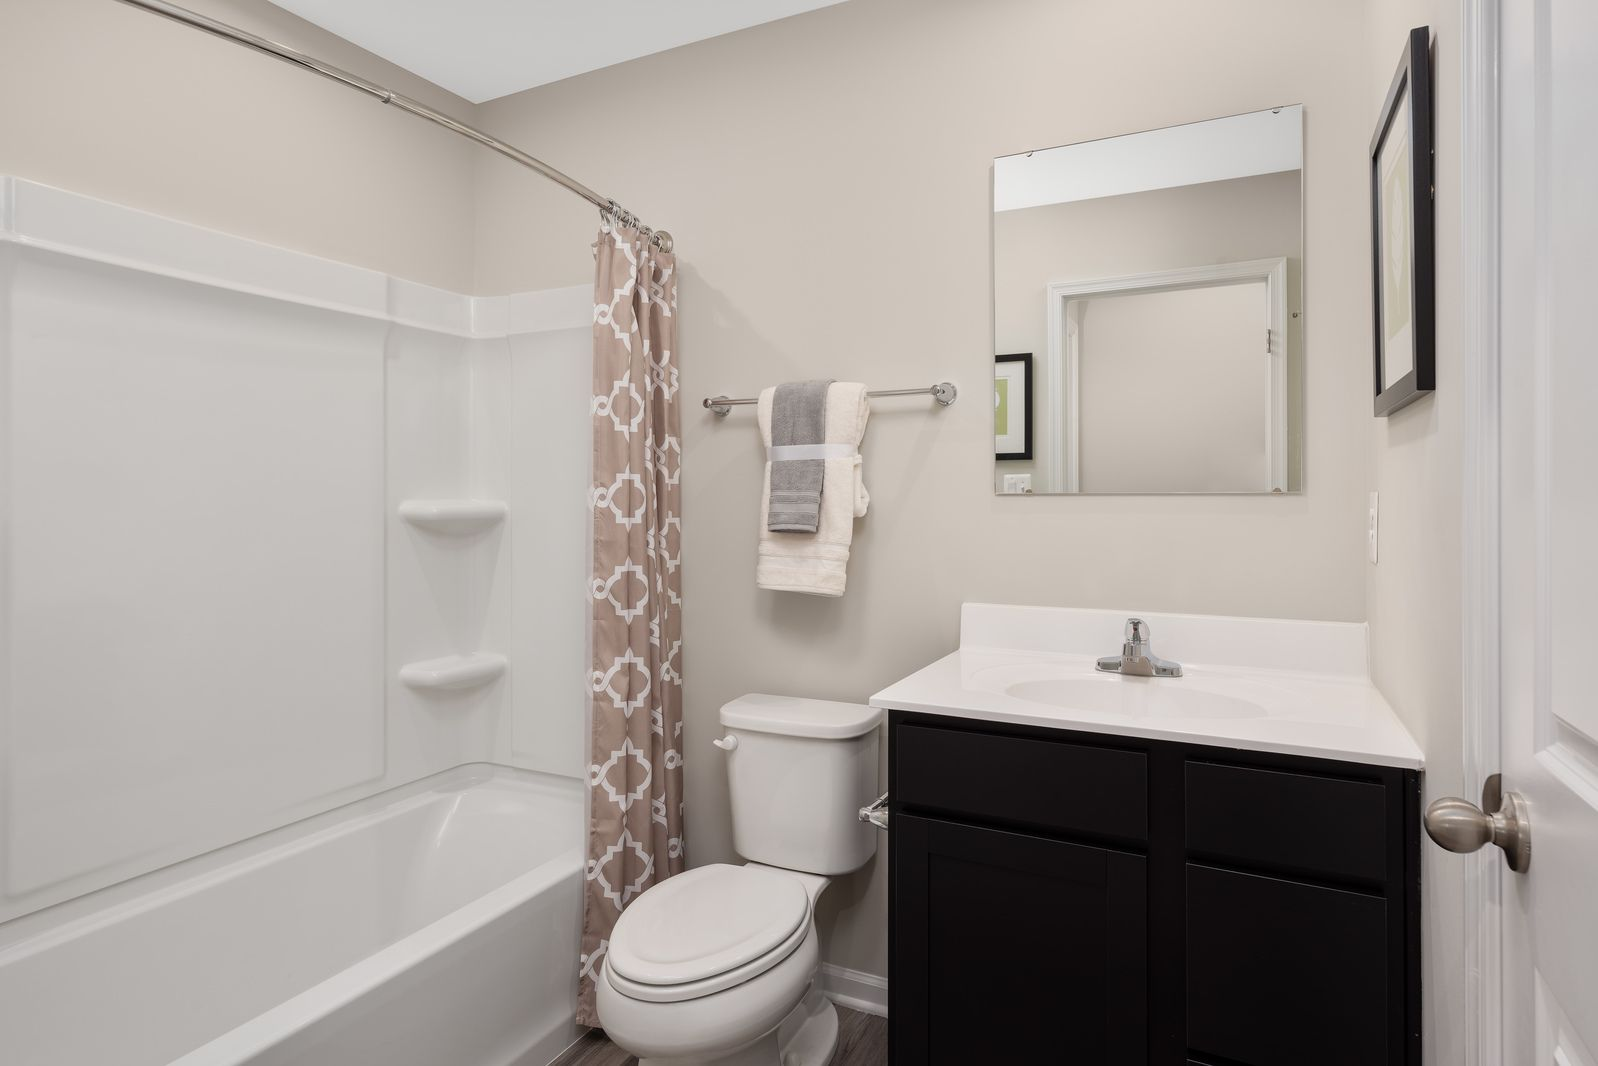 Bathroom featured in the Birch By Ryan Homes in Akron, OH